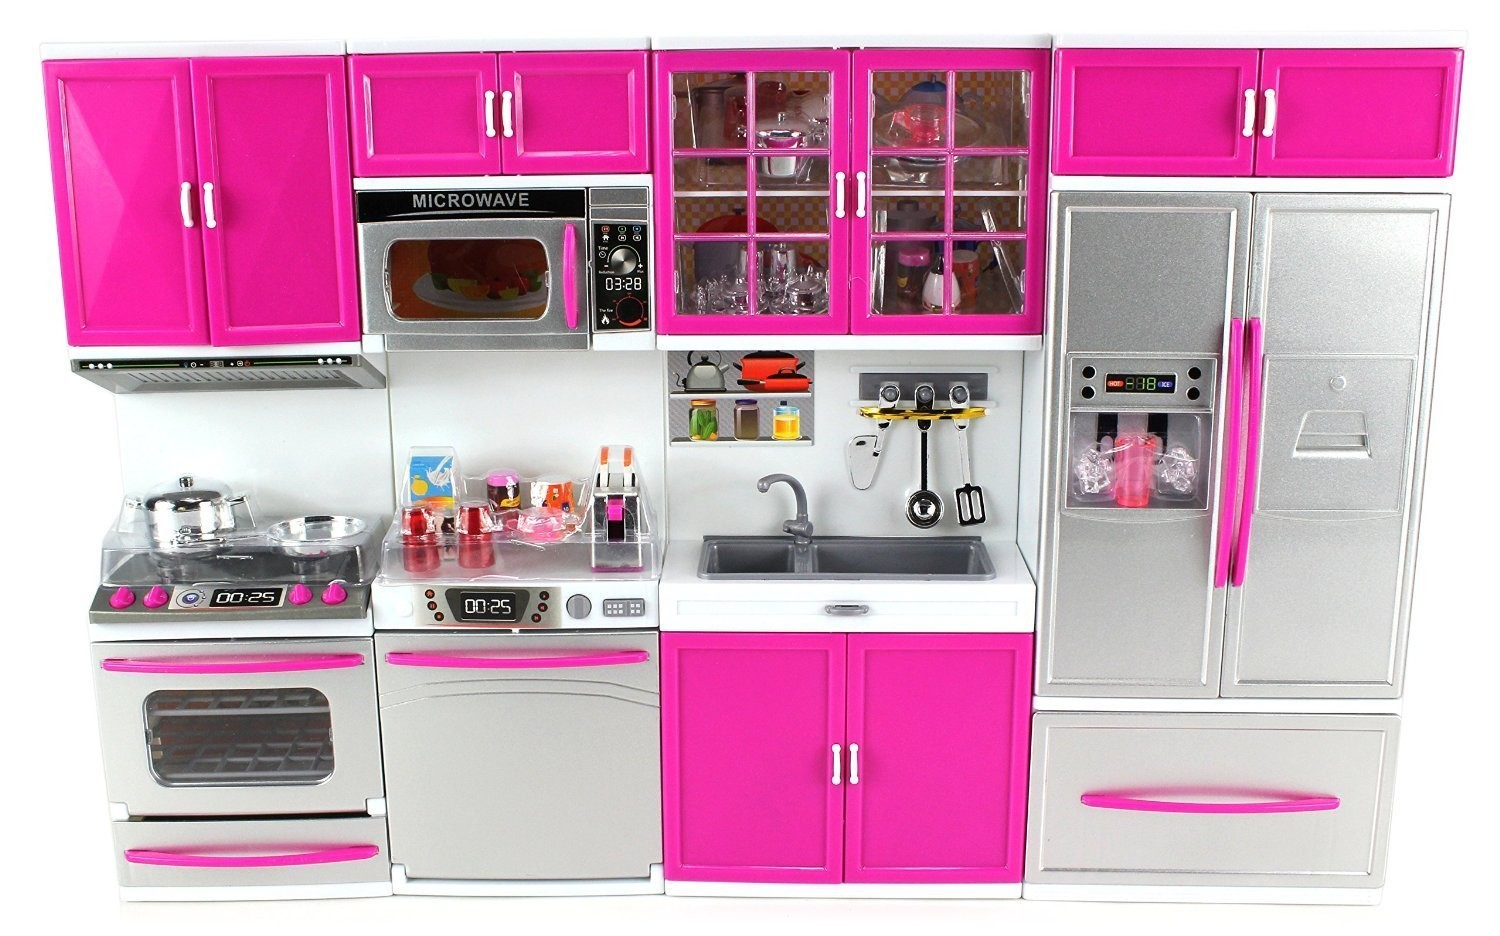 My Modern Kitchen Full Deluxe Kit Battery Operated Kitchen Playset : Refrigerator, Stove, Sink, Microwave